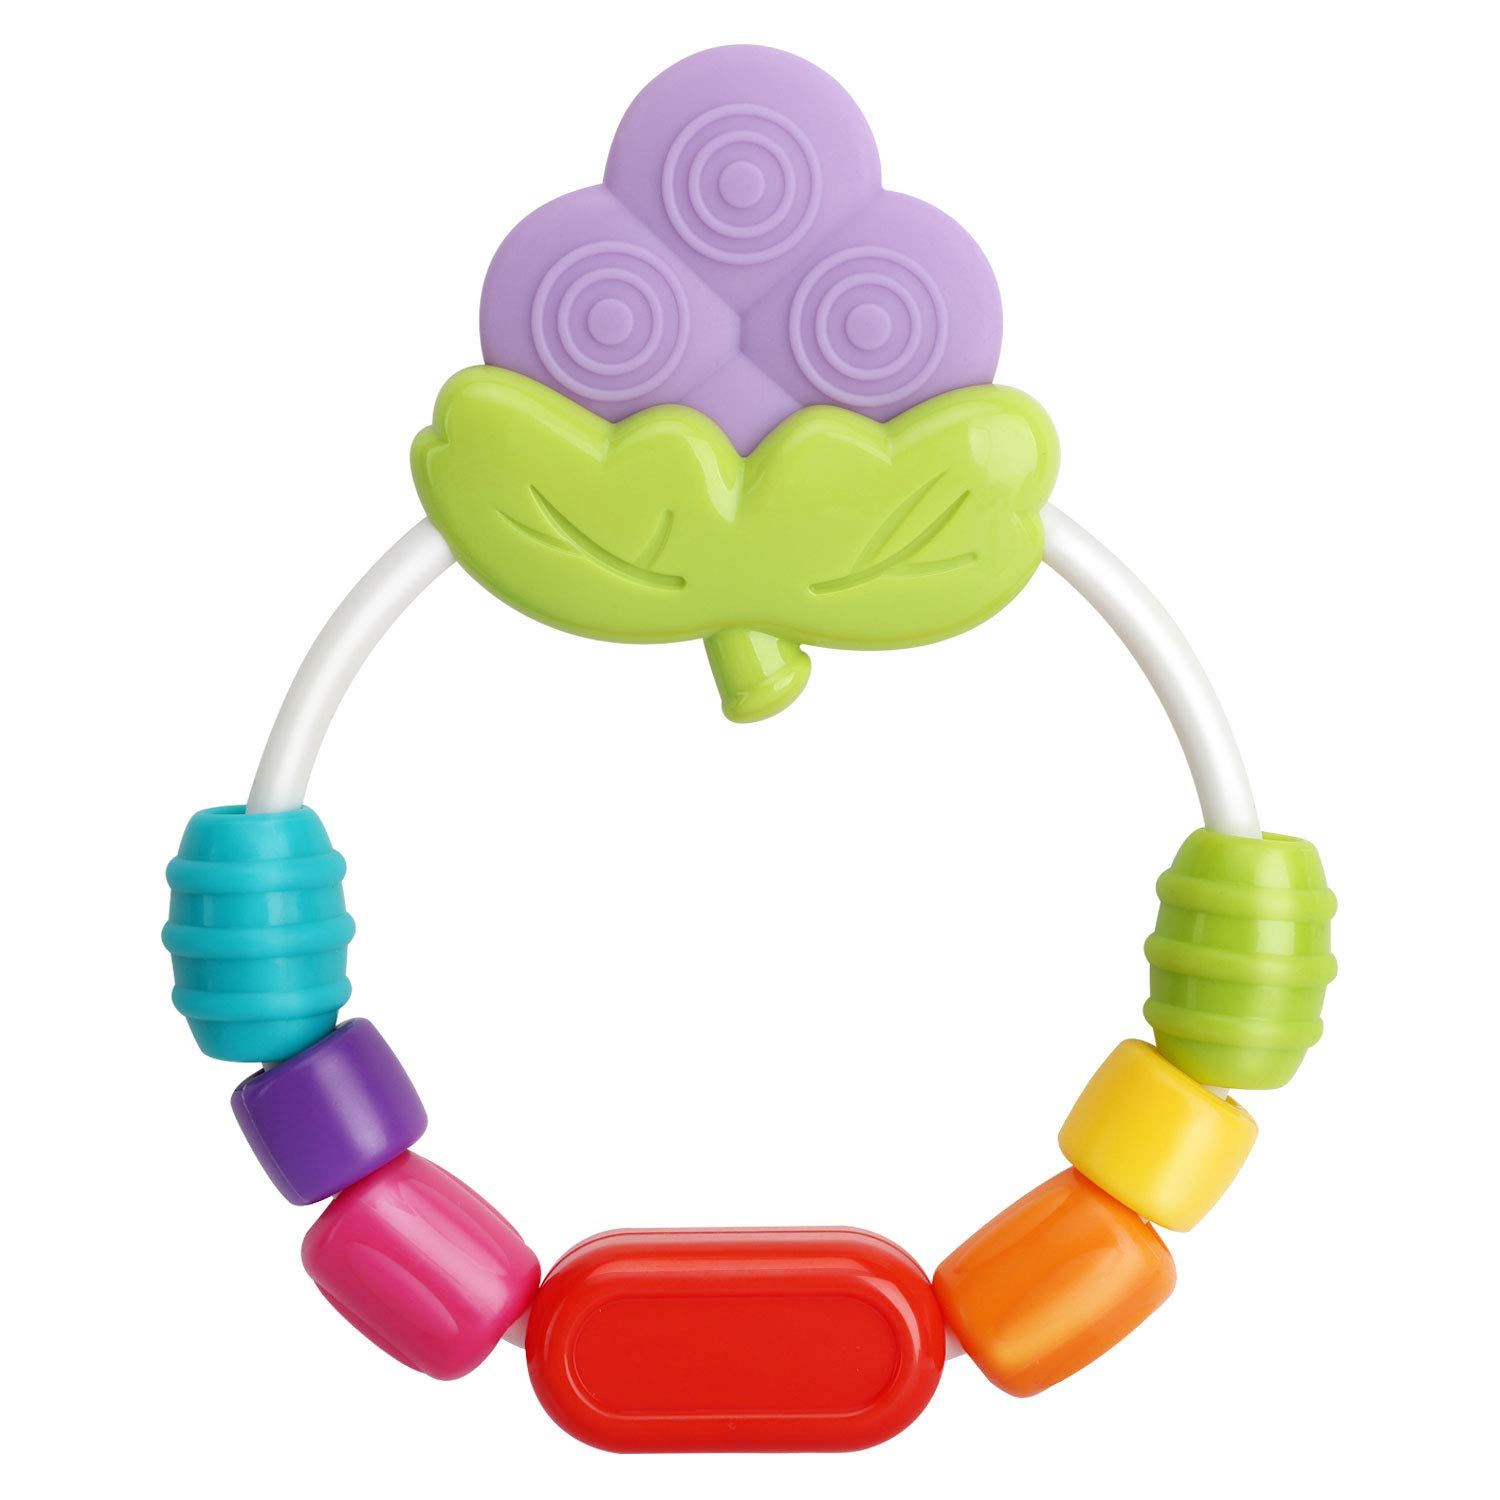 Easy to Hold Turnable Beaded Teether Toy for Infants and Toddlers Zooawa Baby Teether BPA-Free Soft and Soothing Ice Cream Teething Toys